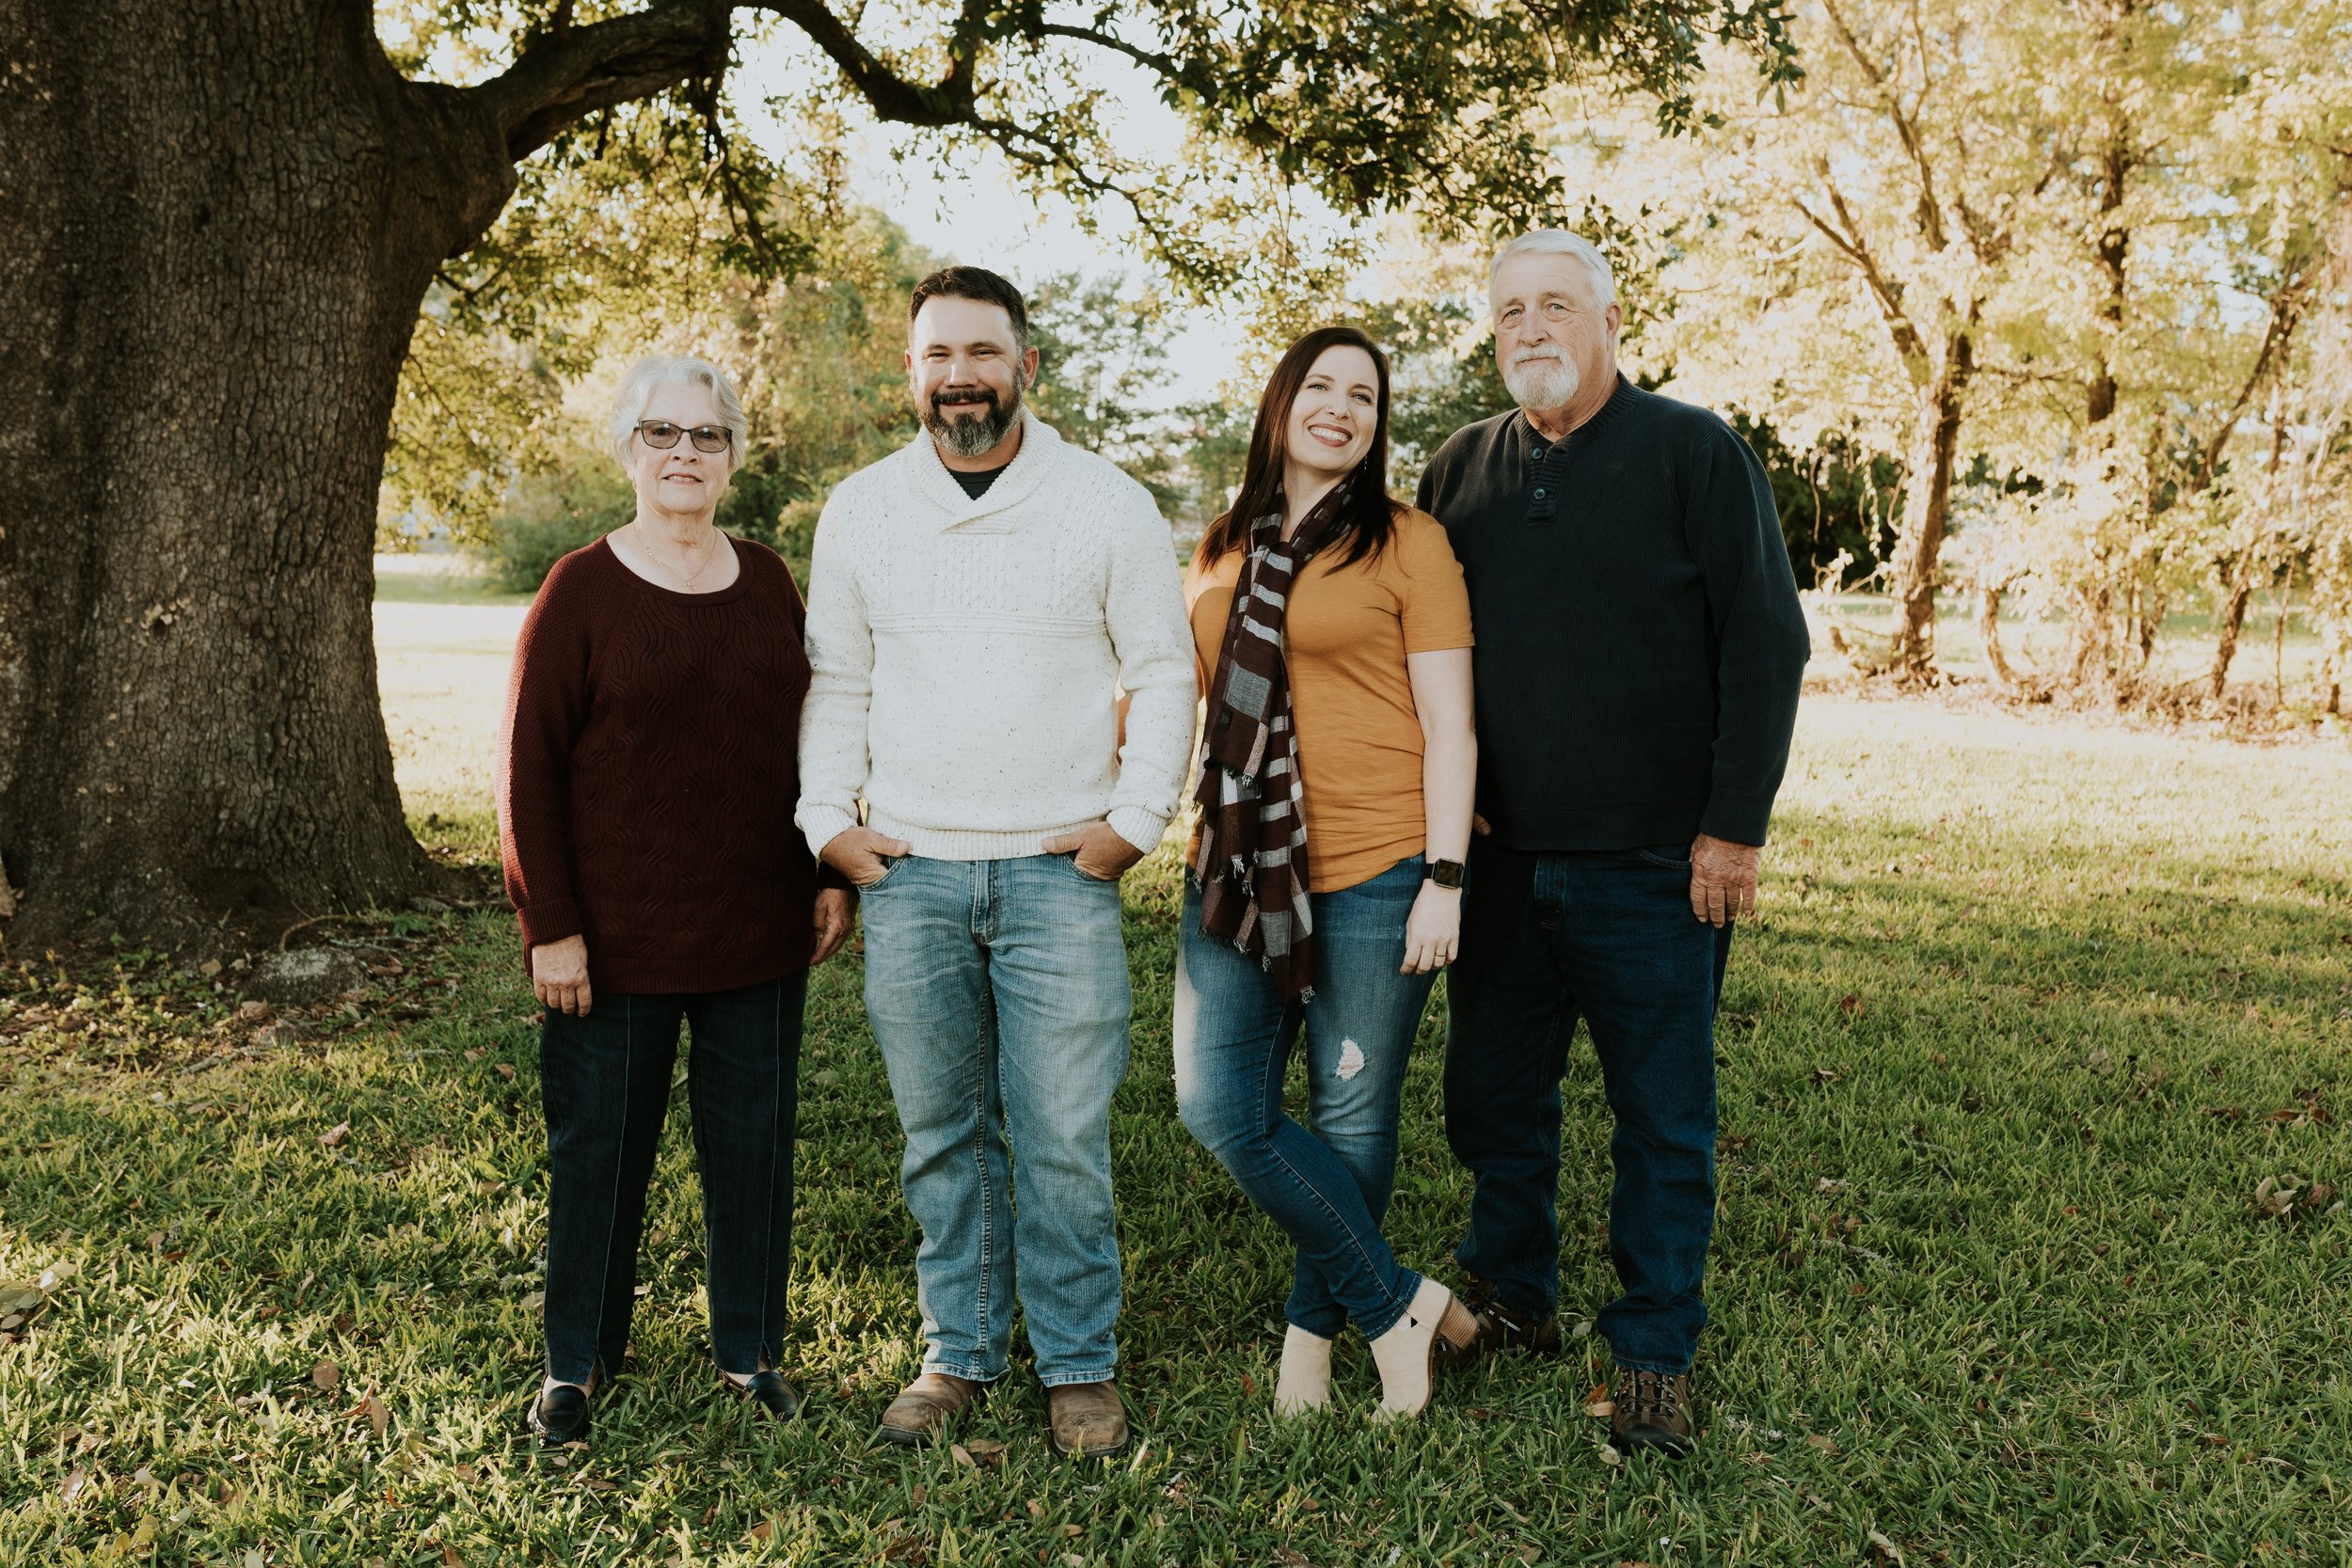 family-picture-photography-lake-charles-207.JPG